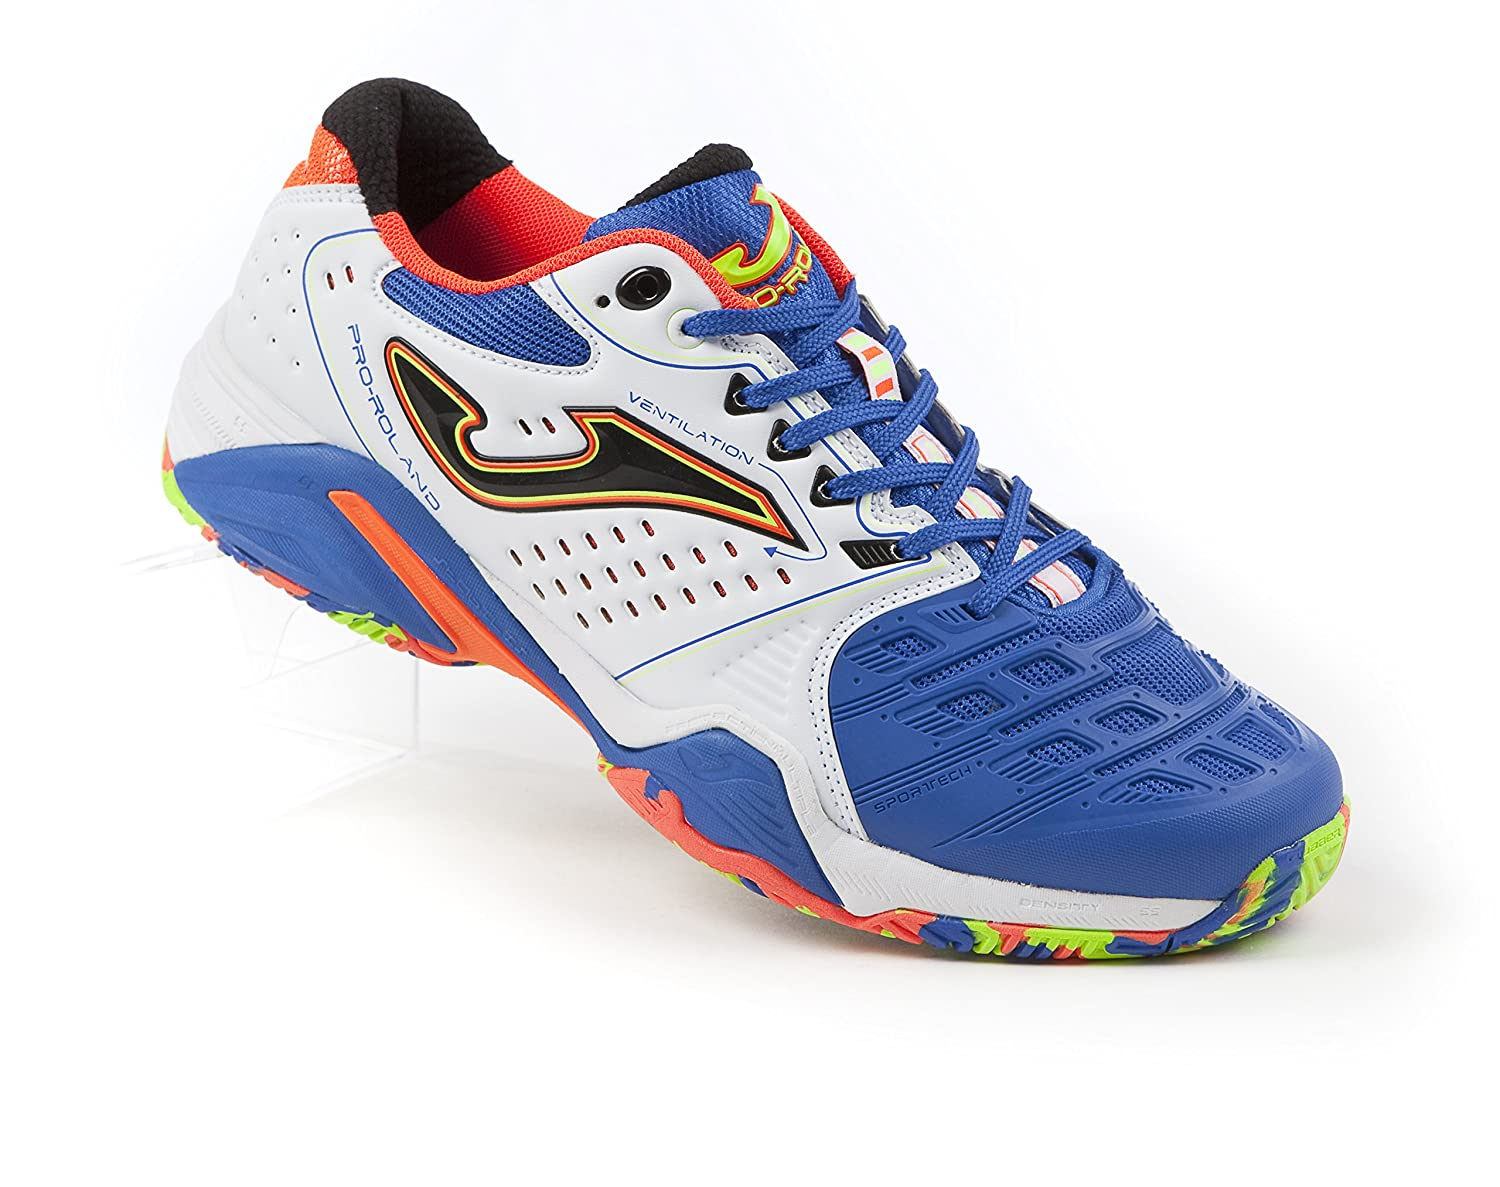 Joma T. pro-roland Shoe Spring Summer zapatos tenis hombre Tenis ...